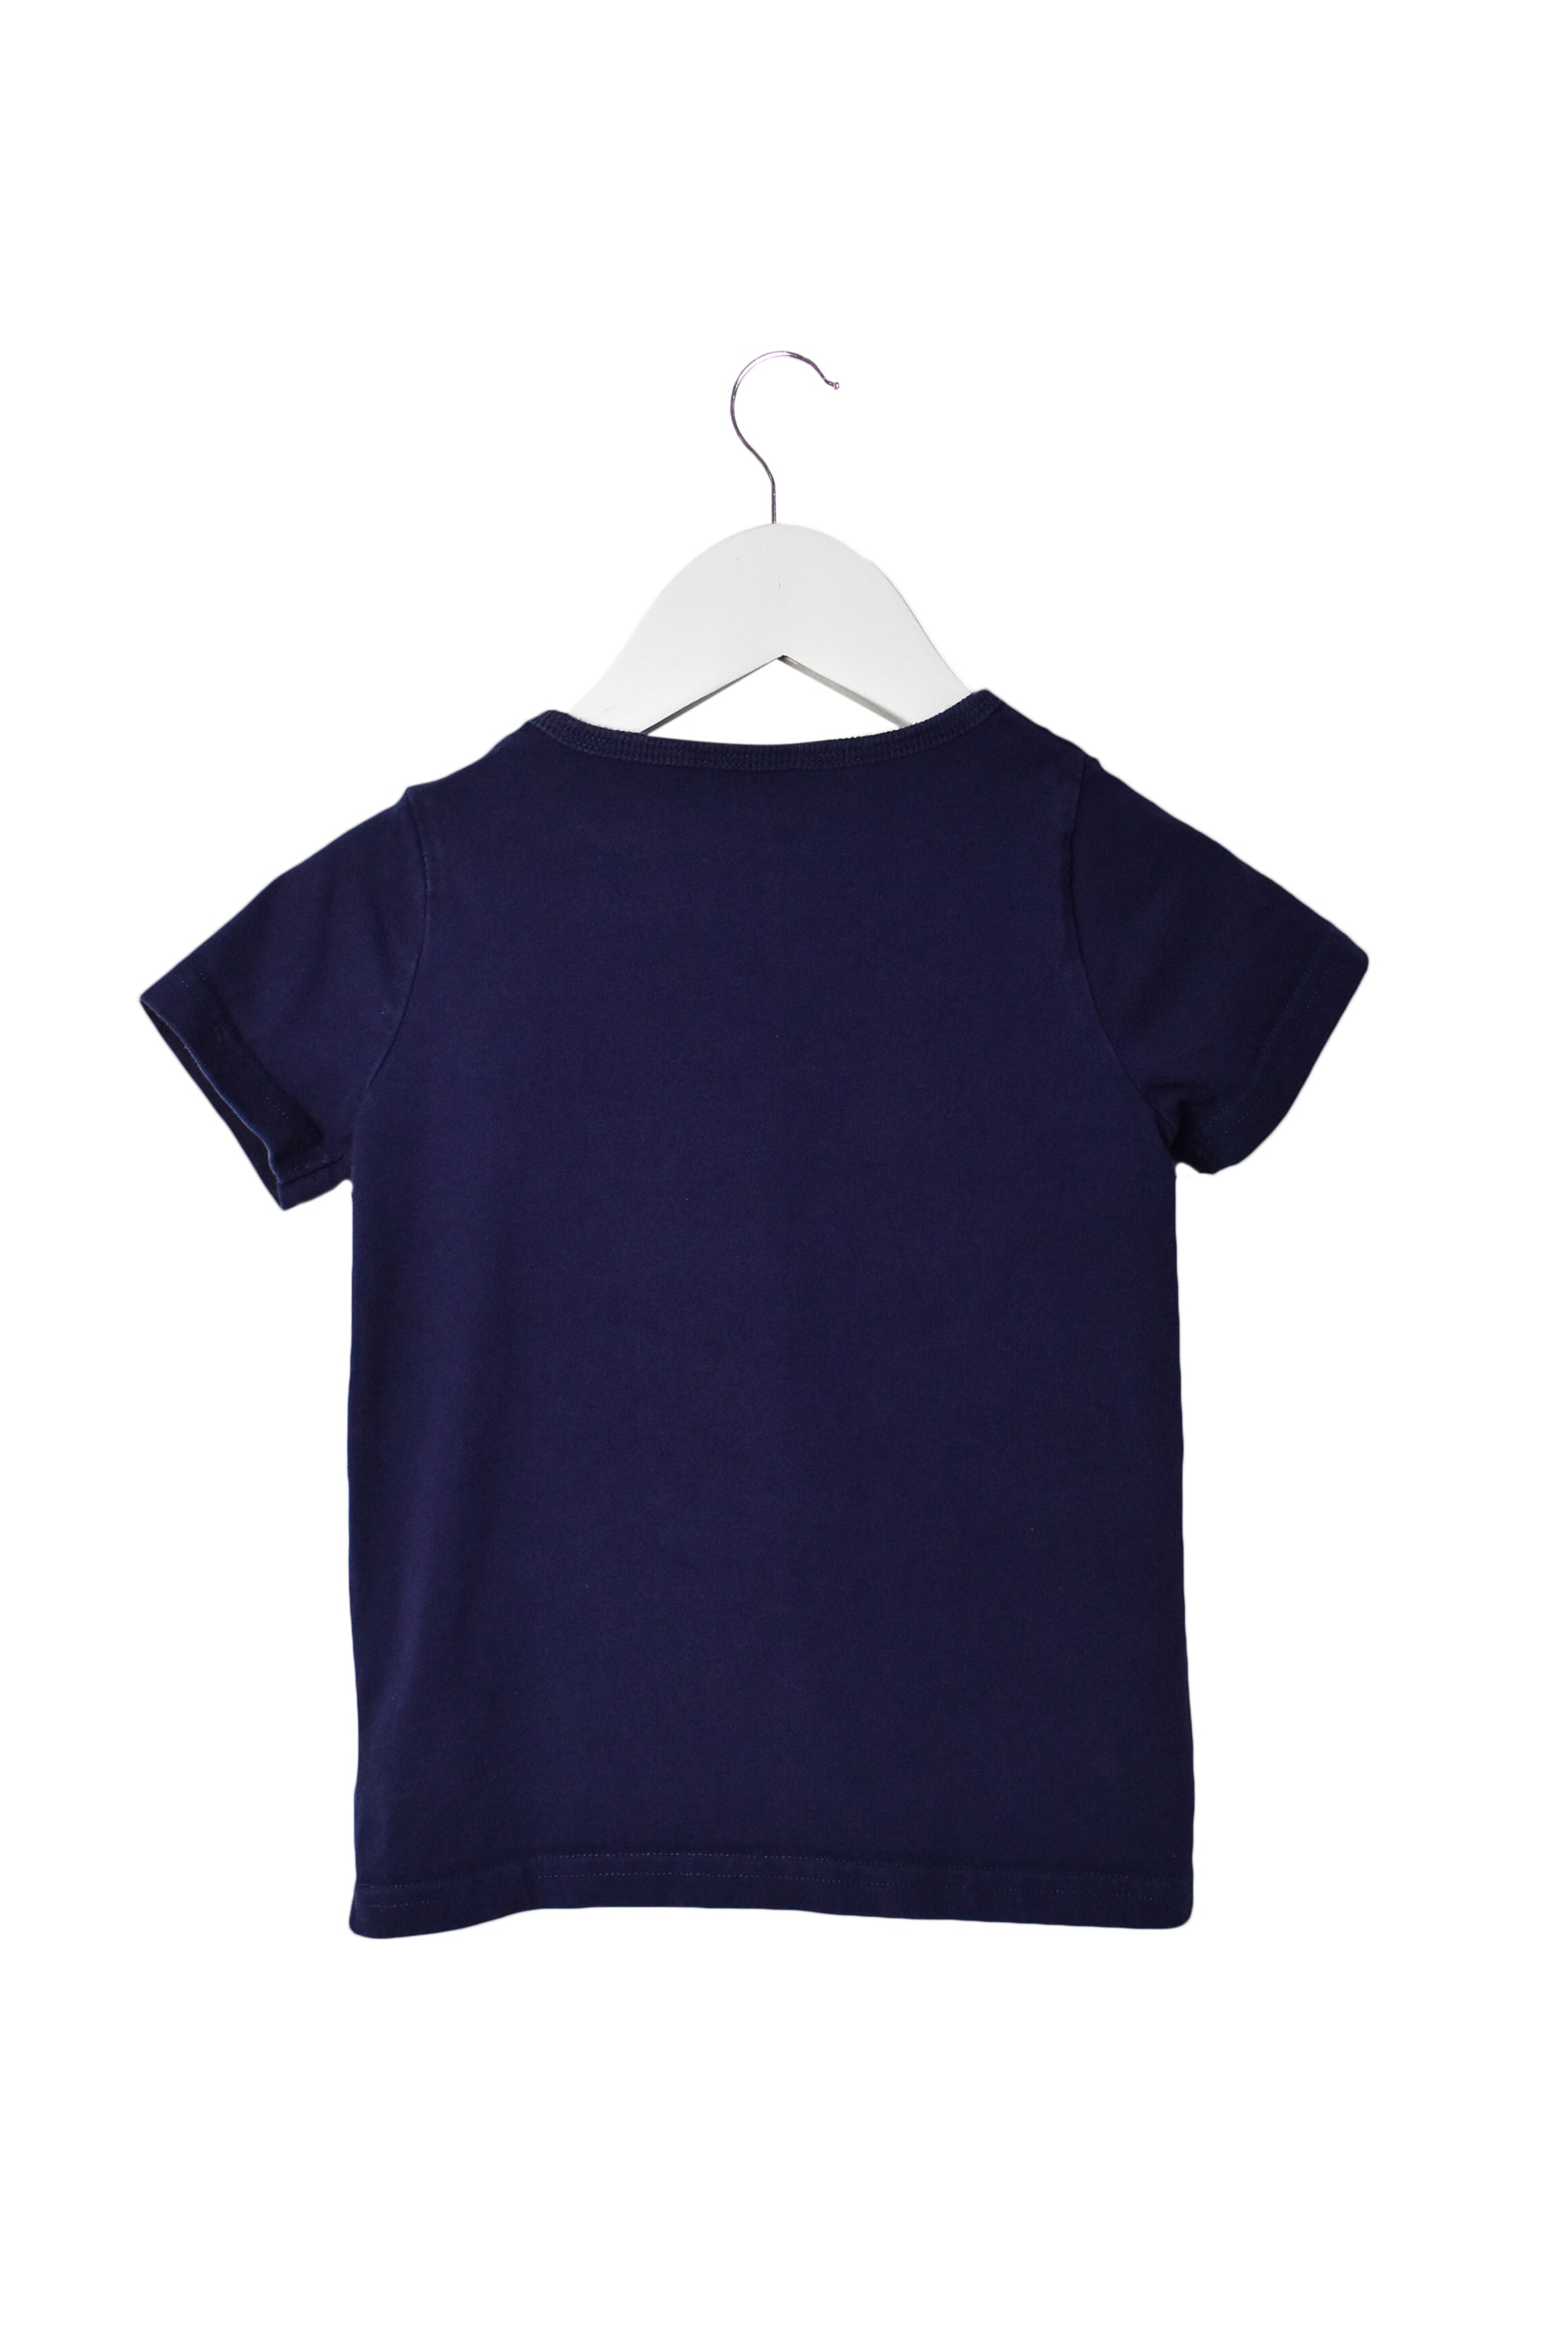 10006978 Boden Baby~T-Shirt 18-24M at Retykle